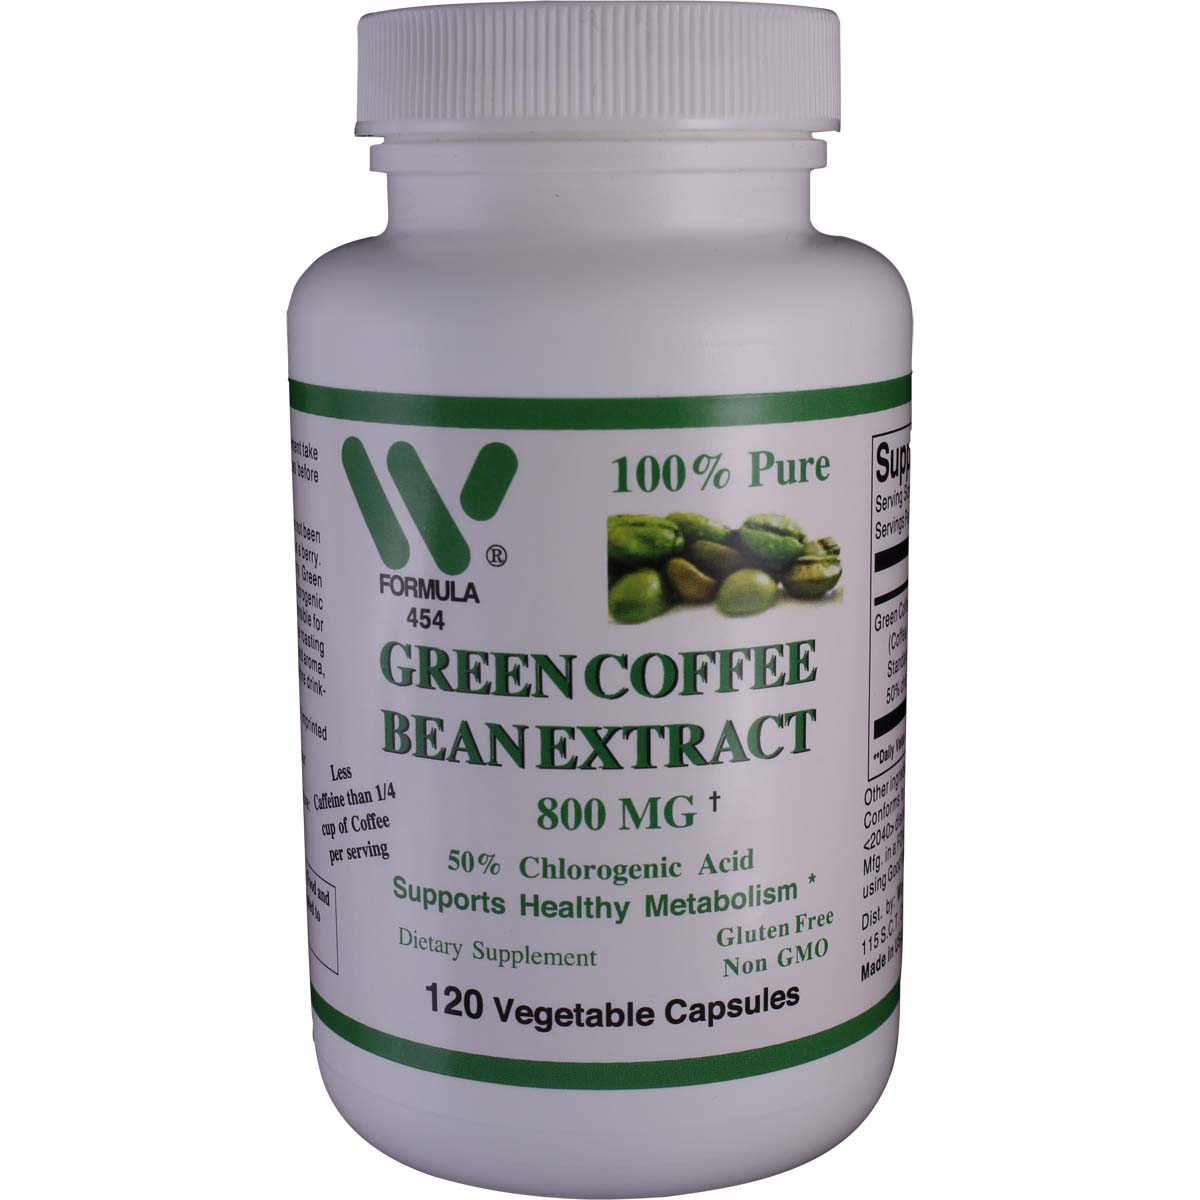 Green Coffee Bean Extract 800 Mg Qty 120 Veg Capsules Item